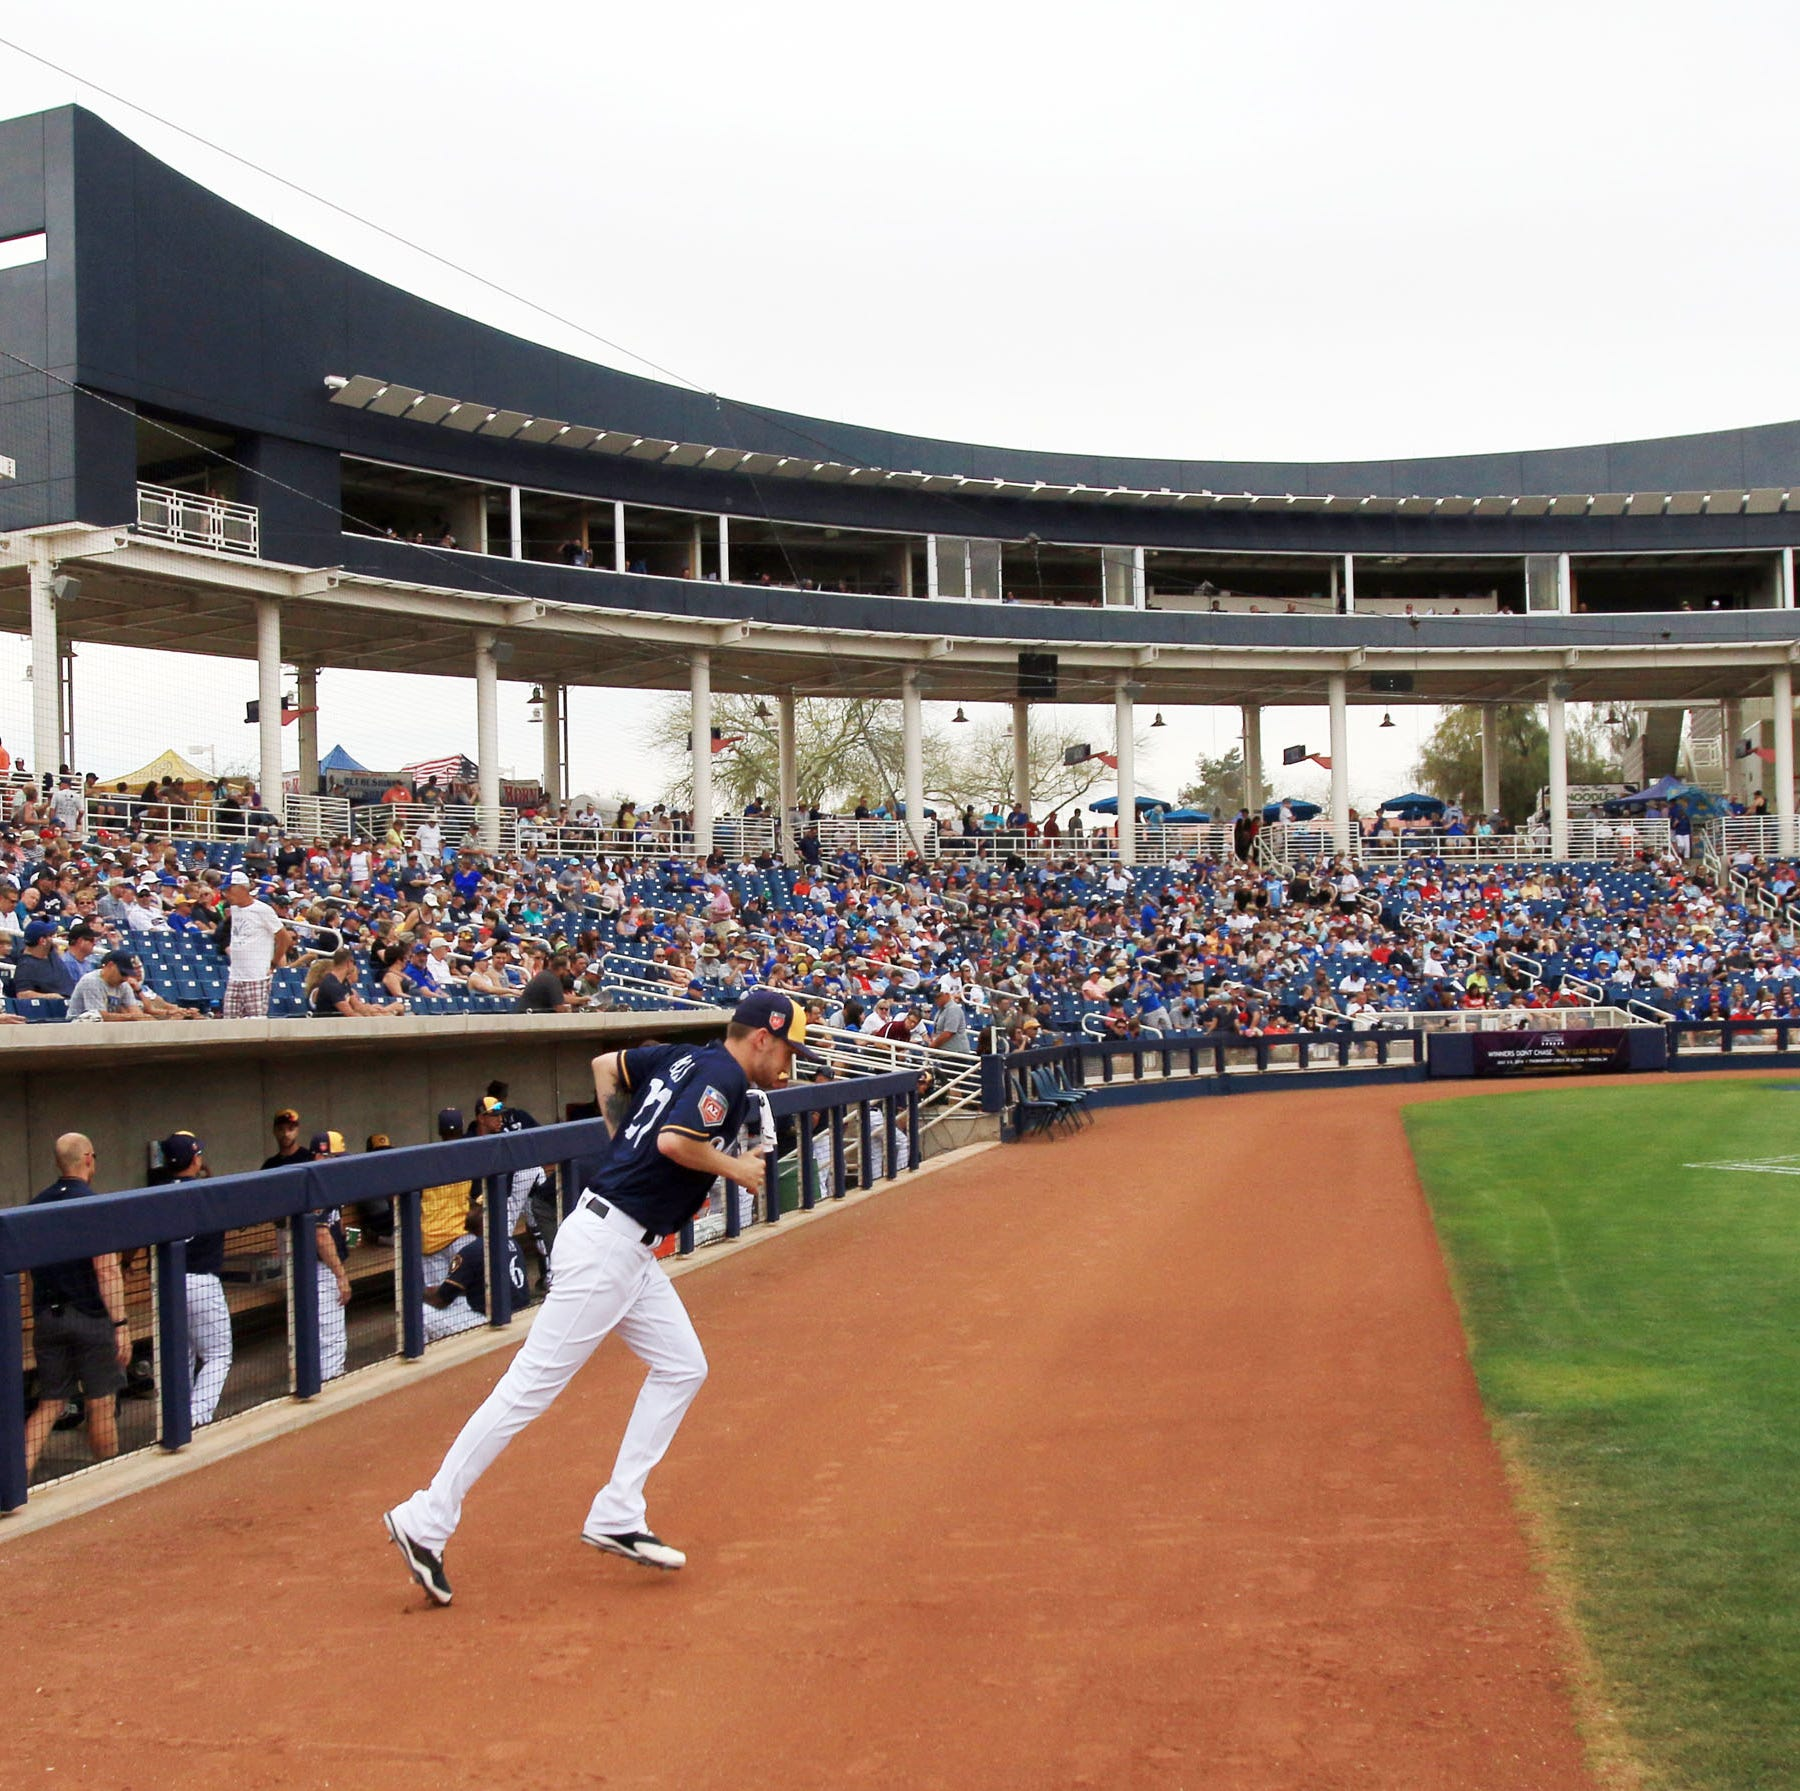 Milwaukee Brewers say fans are thinking about spring training, creating a strong demand for tickets